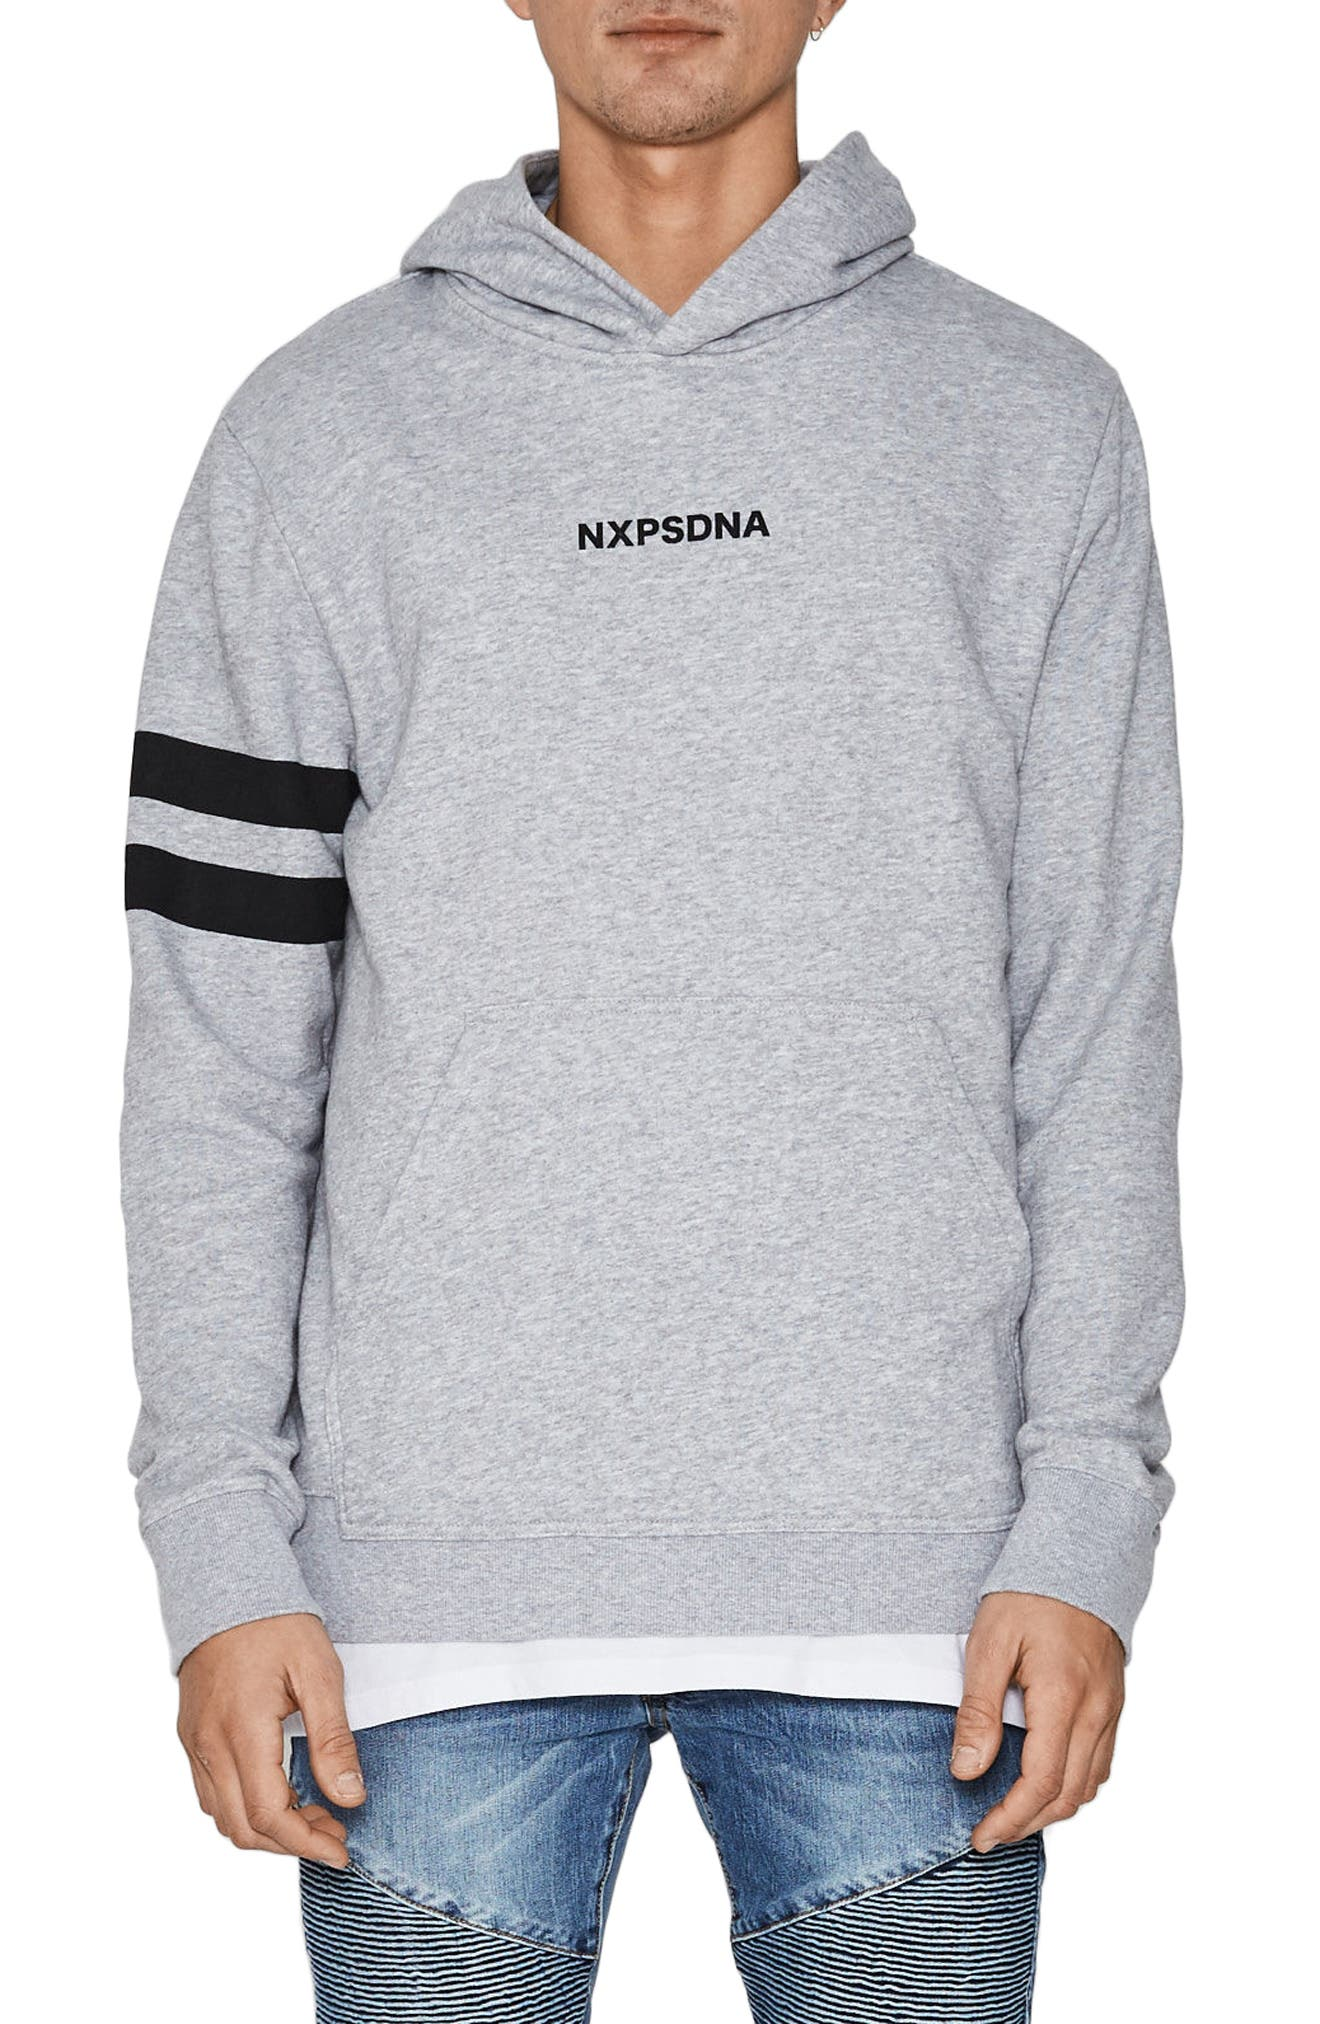 Overtime Hoodie,                             Main thumbnail 1, color,                             Grey Marle